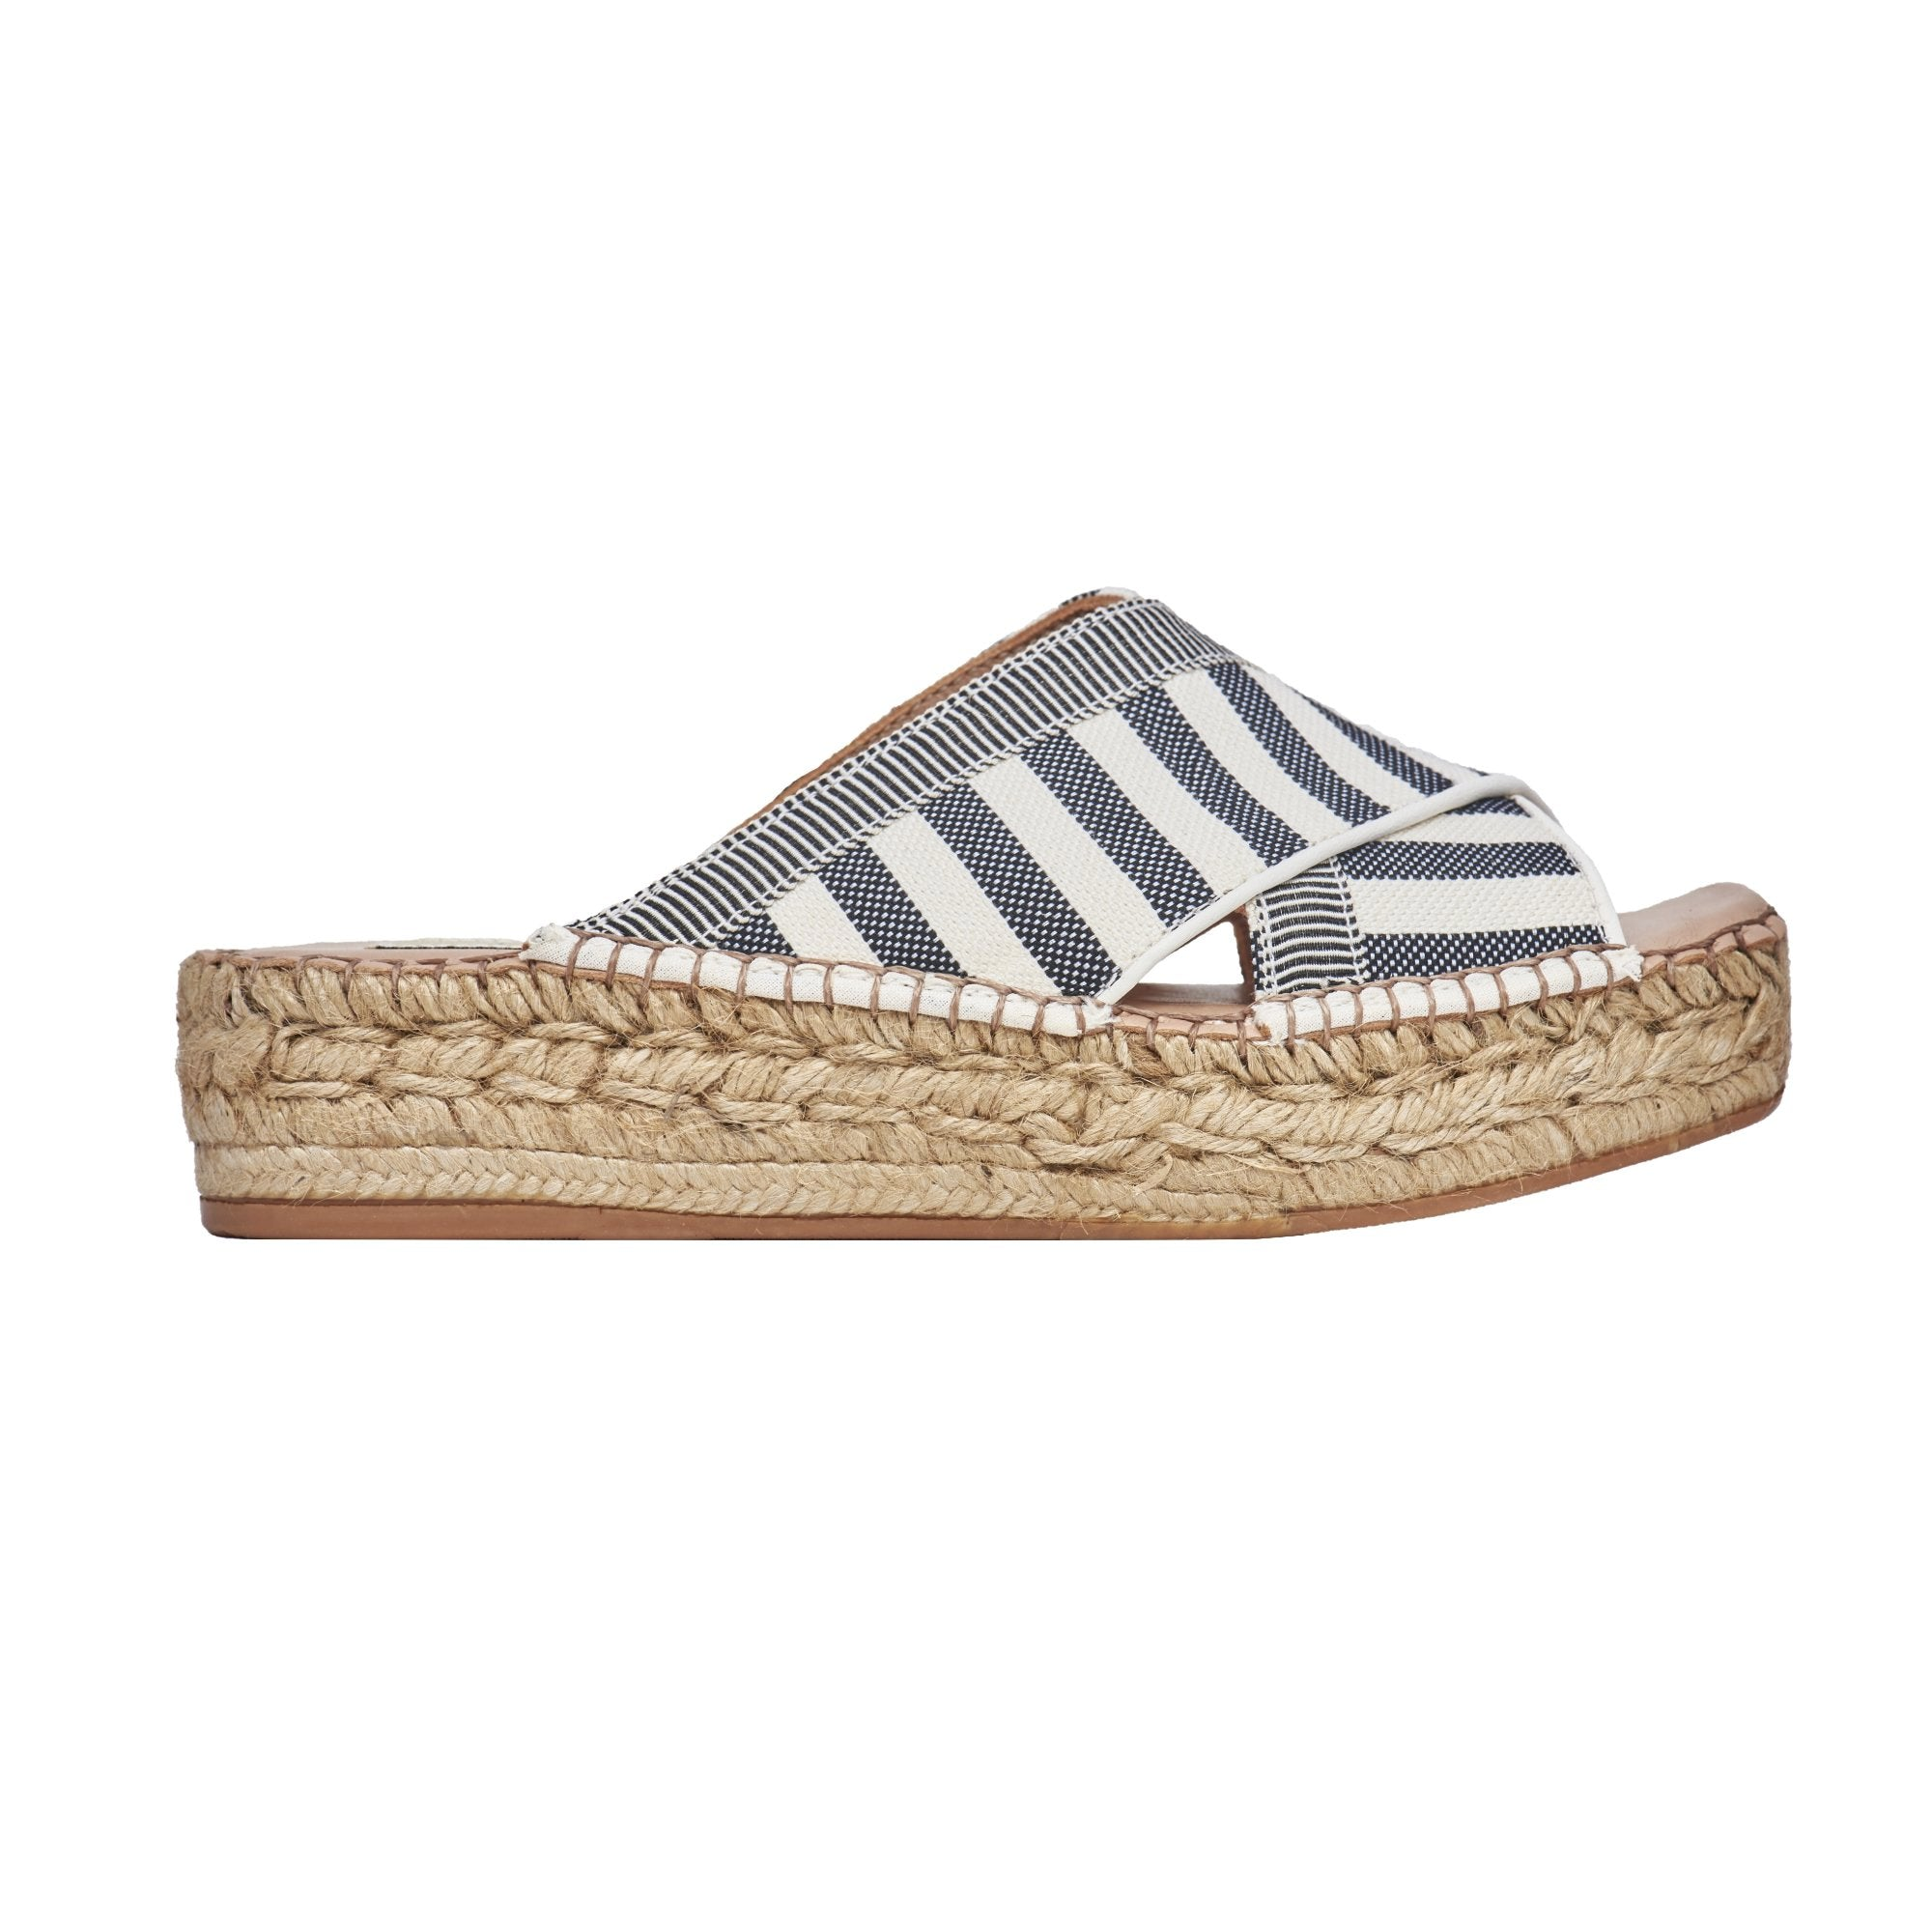 8bad52a2a MABEL espadrilles – Cote and Badt